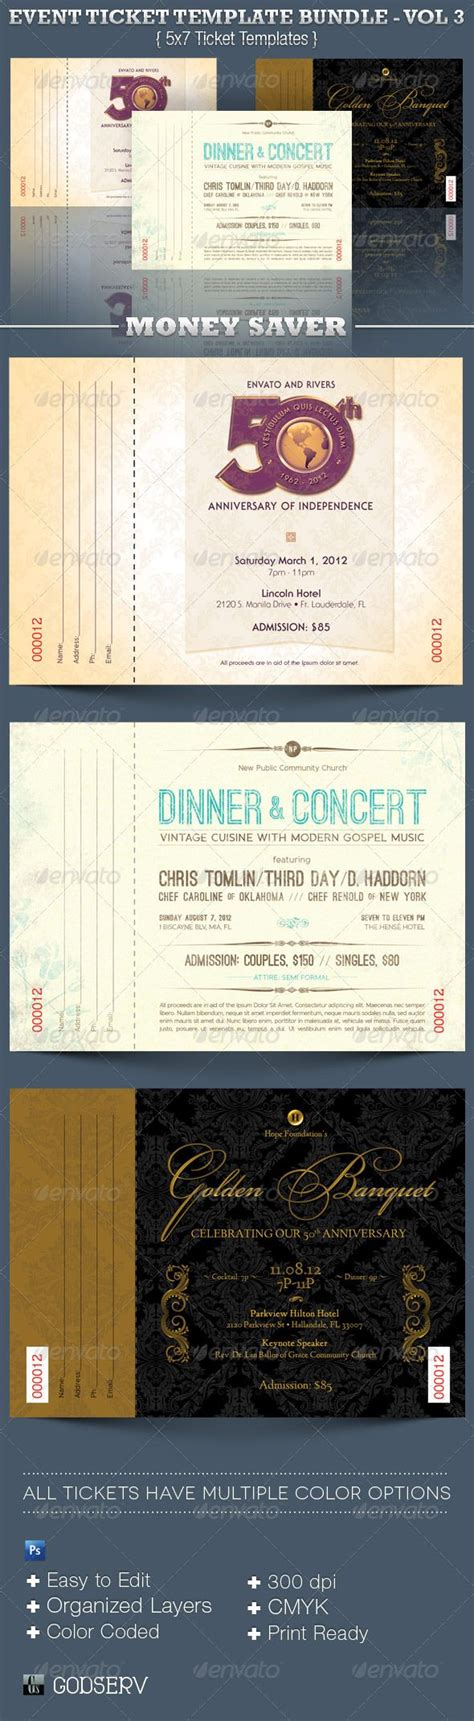 Event Ticket Template Bundle Volume 3 Fonts Church And Photoshop Event Ticket Template Photoshop